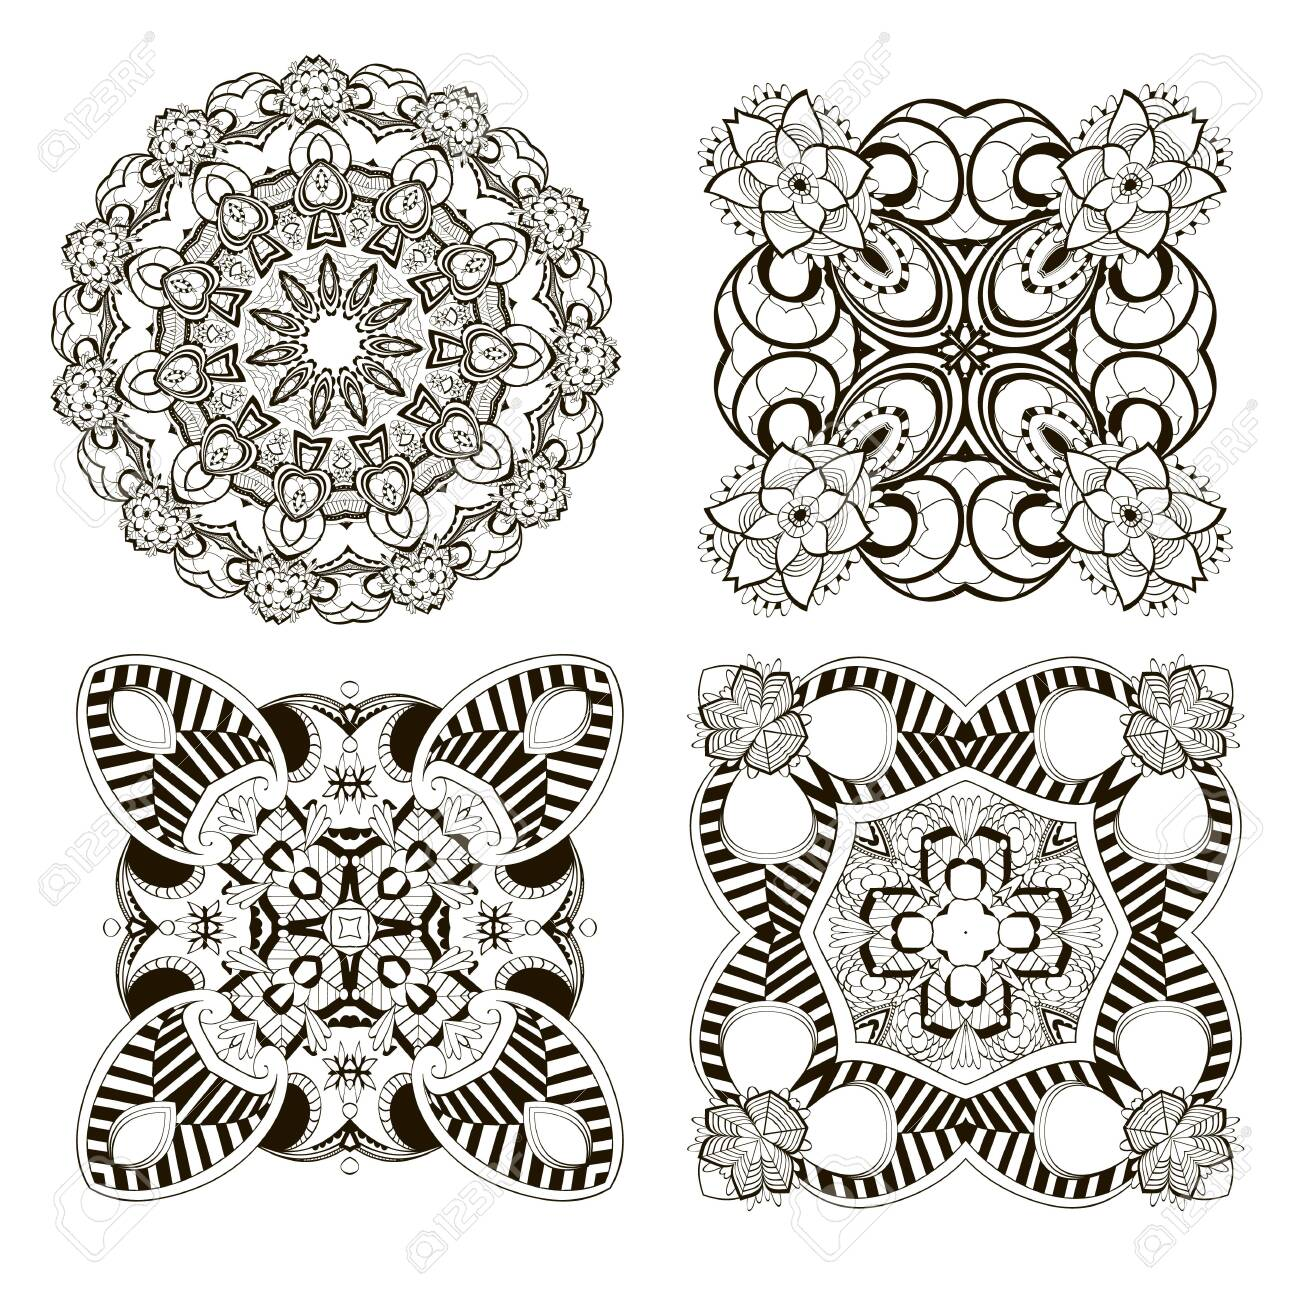 Mandalas set. Vector flowers collection. Floral background. Monochrome black and white ethnic style decorative ornaments. Ornamental isolated design. For cards, prints, fabric, textile, decoration. - 133141520